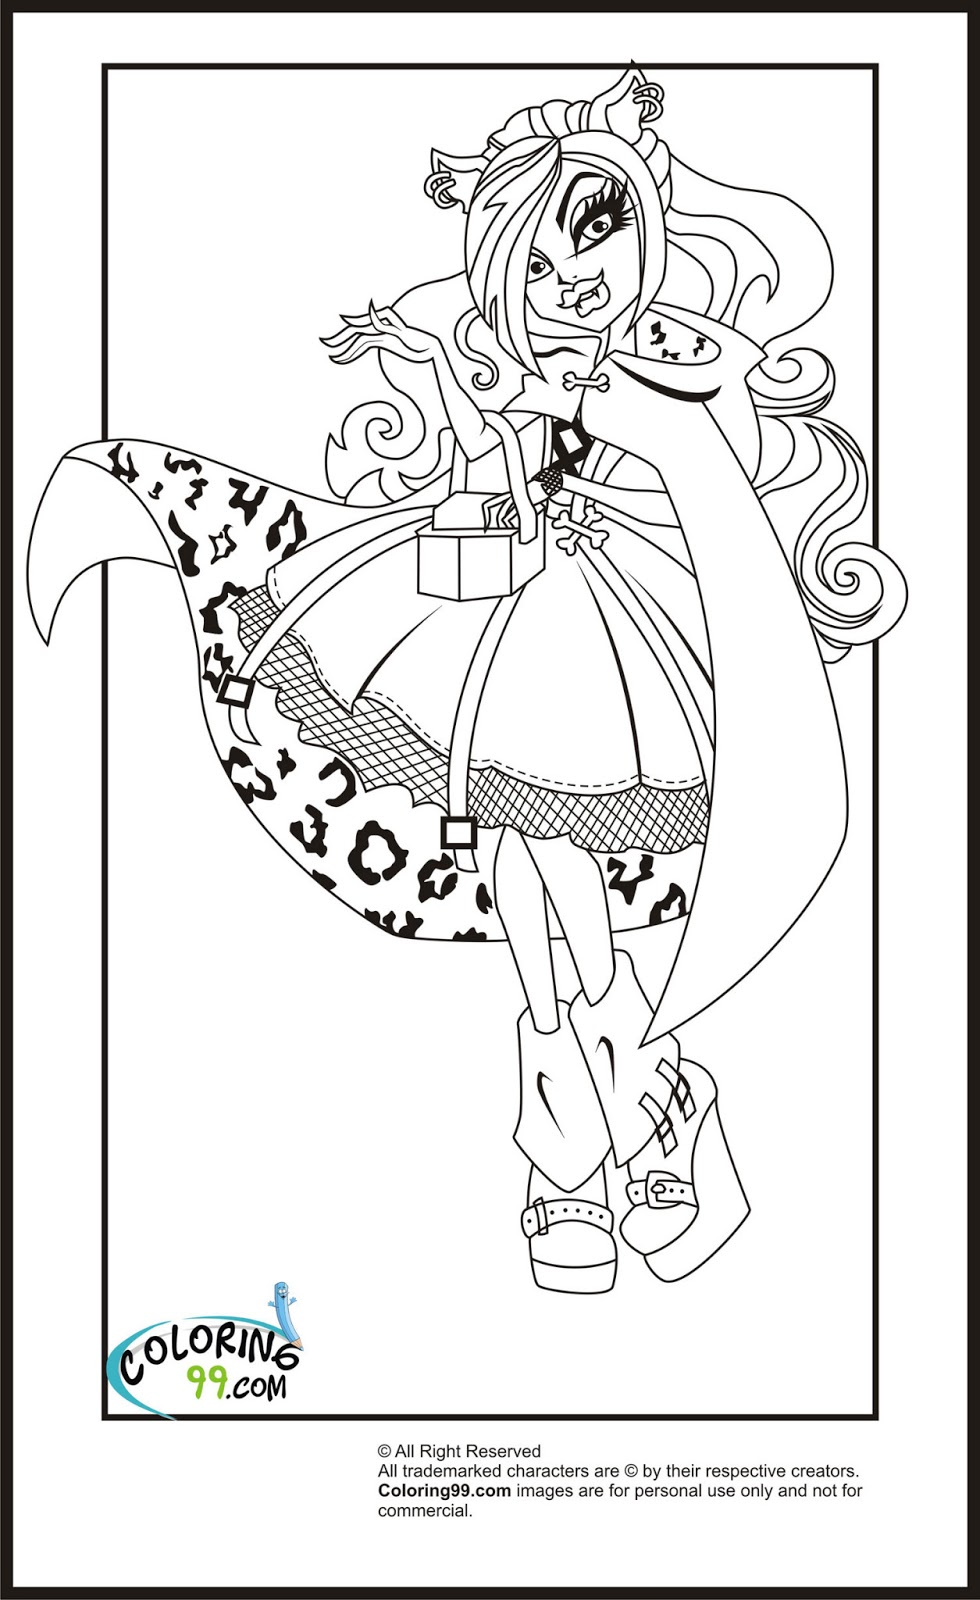 Monster high clawdeen wolf coloring pages team colors for Monster high color pages free